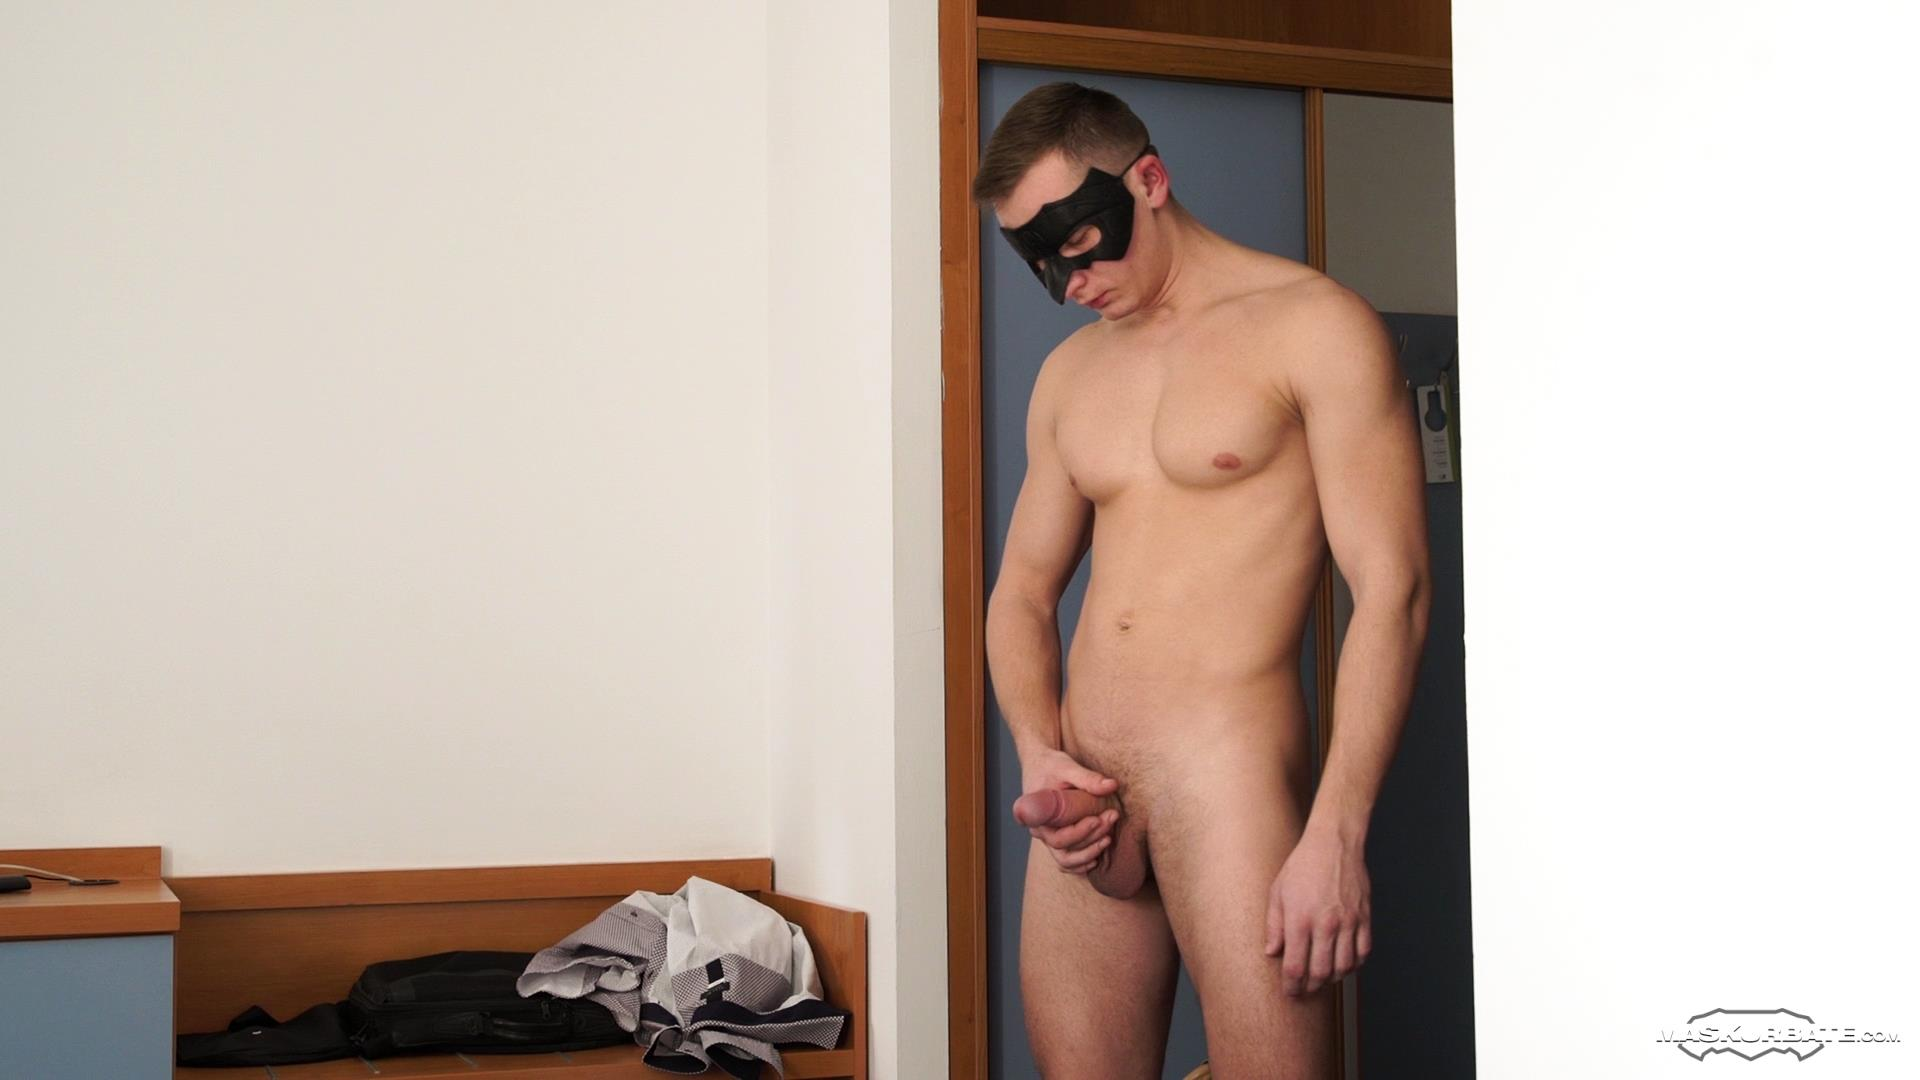 Maskurbate-Andy-Hotel-Bellman-Strokes-Big-Uncut-Cock-06 Paying The Hotel Bellman To Jerk His Big Uncut Cock In My Room